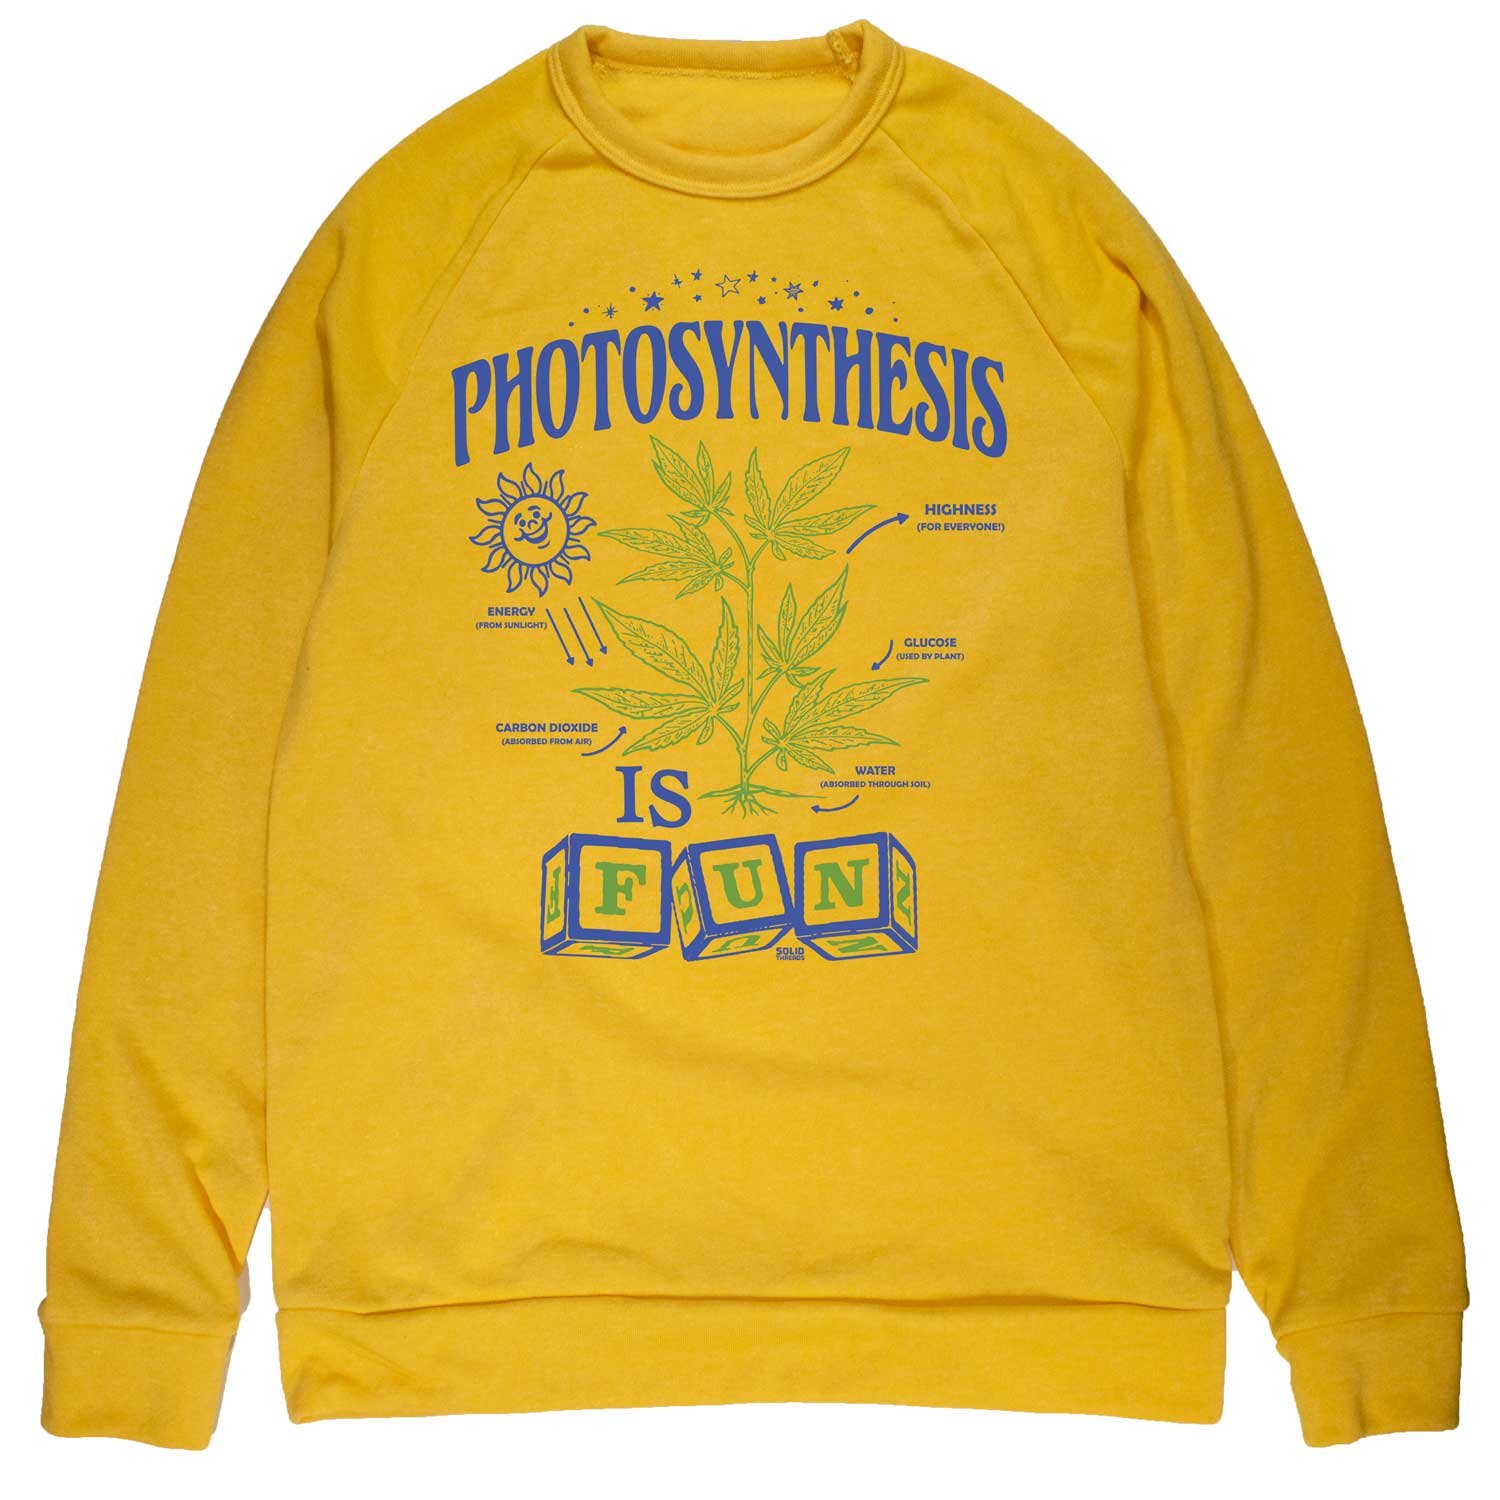 Unisex Photosynthesis is Fun Vintage Inspired Fleece Crewneck Sweatshirt | Retro Marijuana Graphic Pullover | Solid Threads